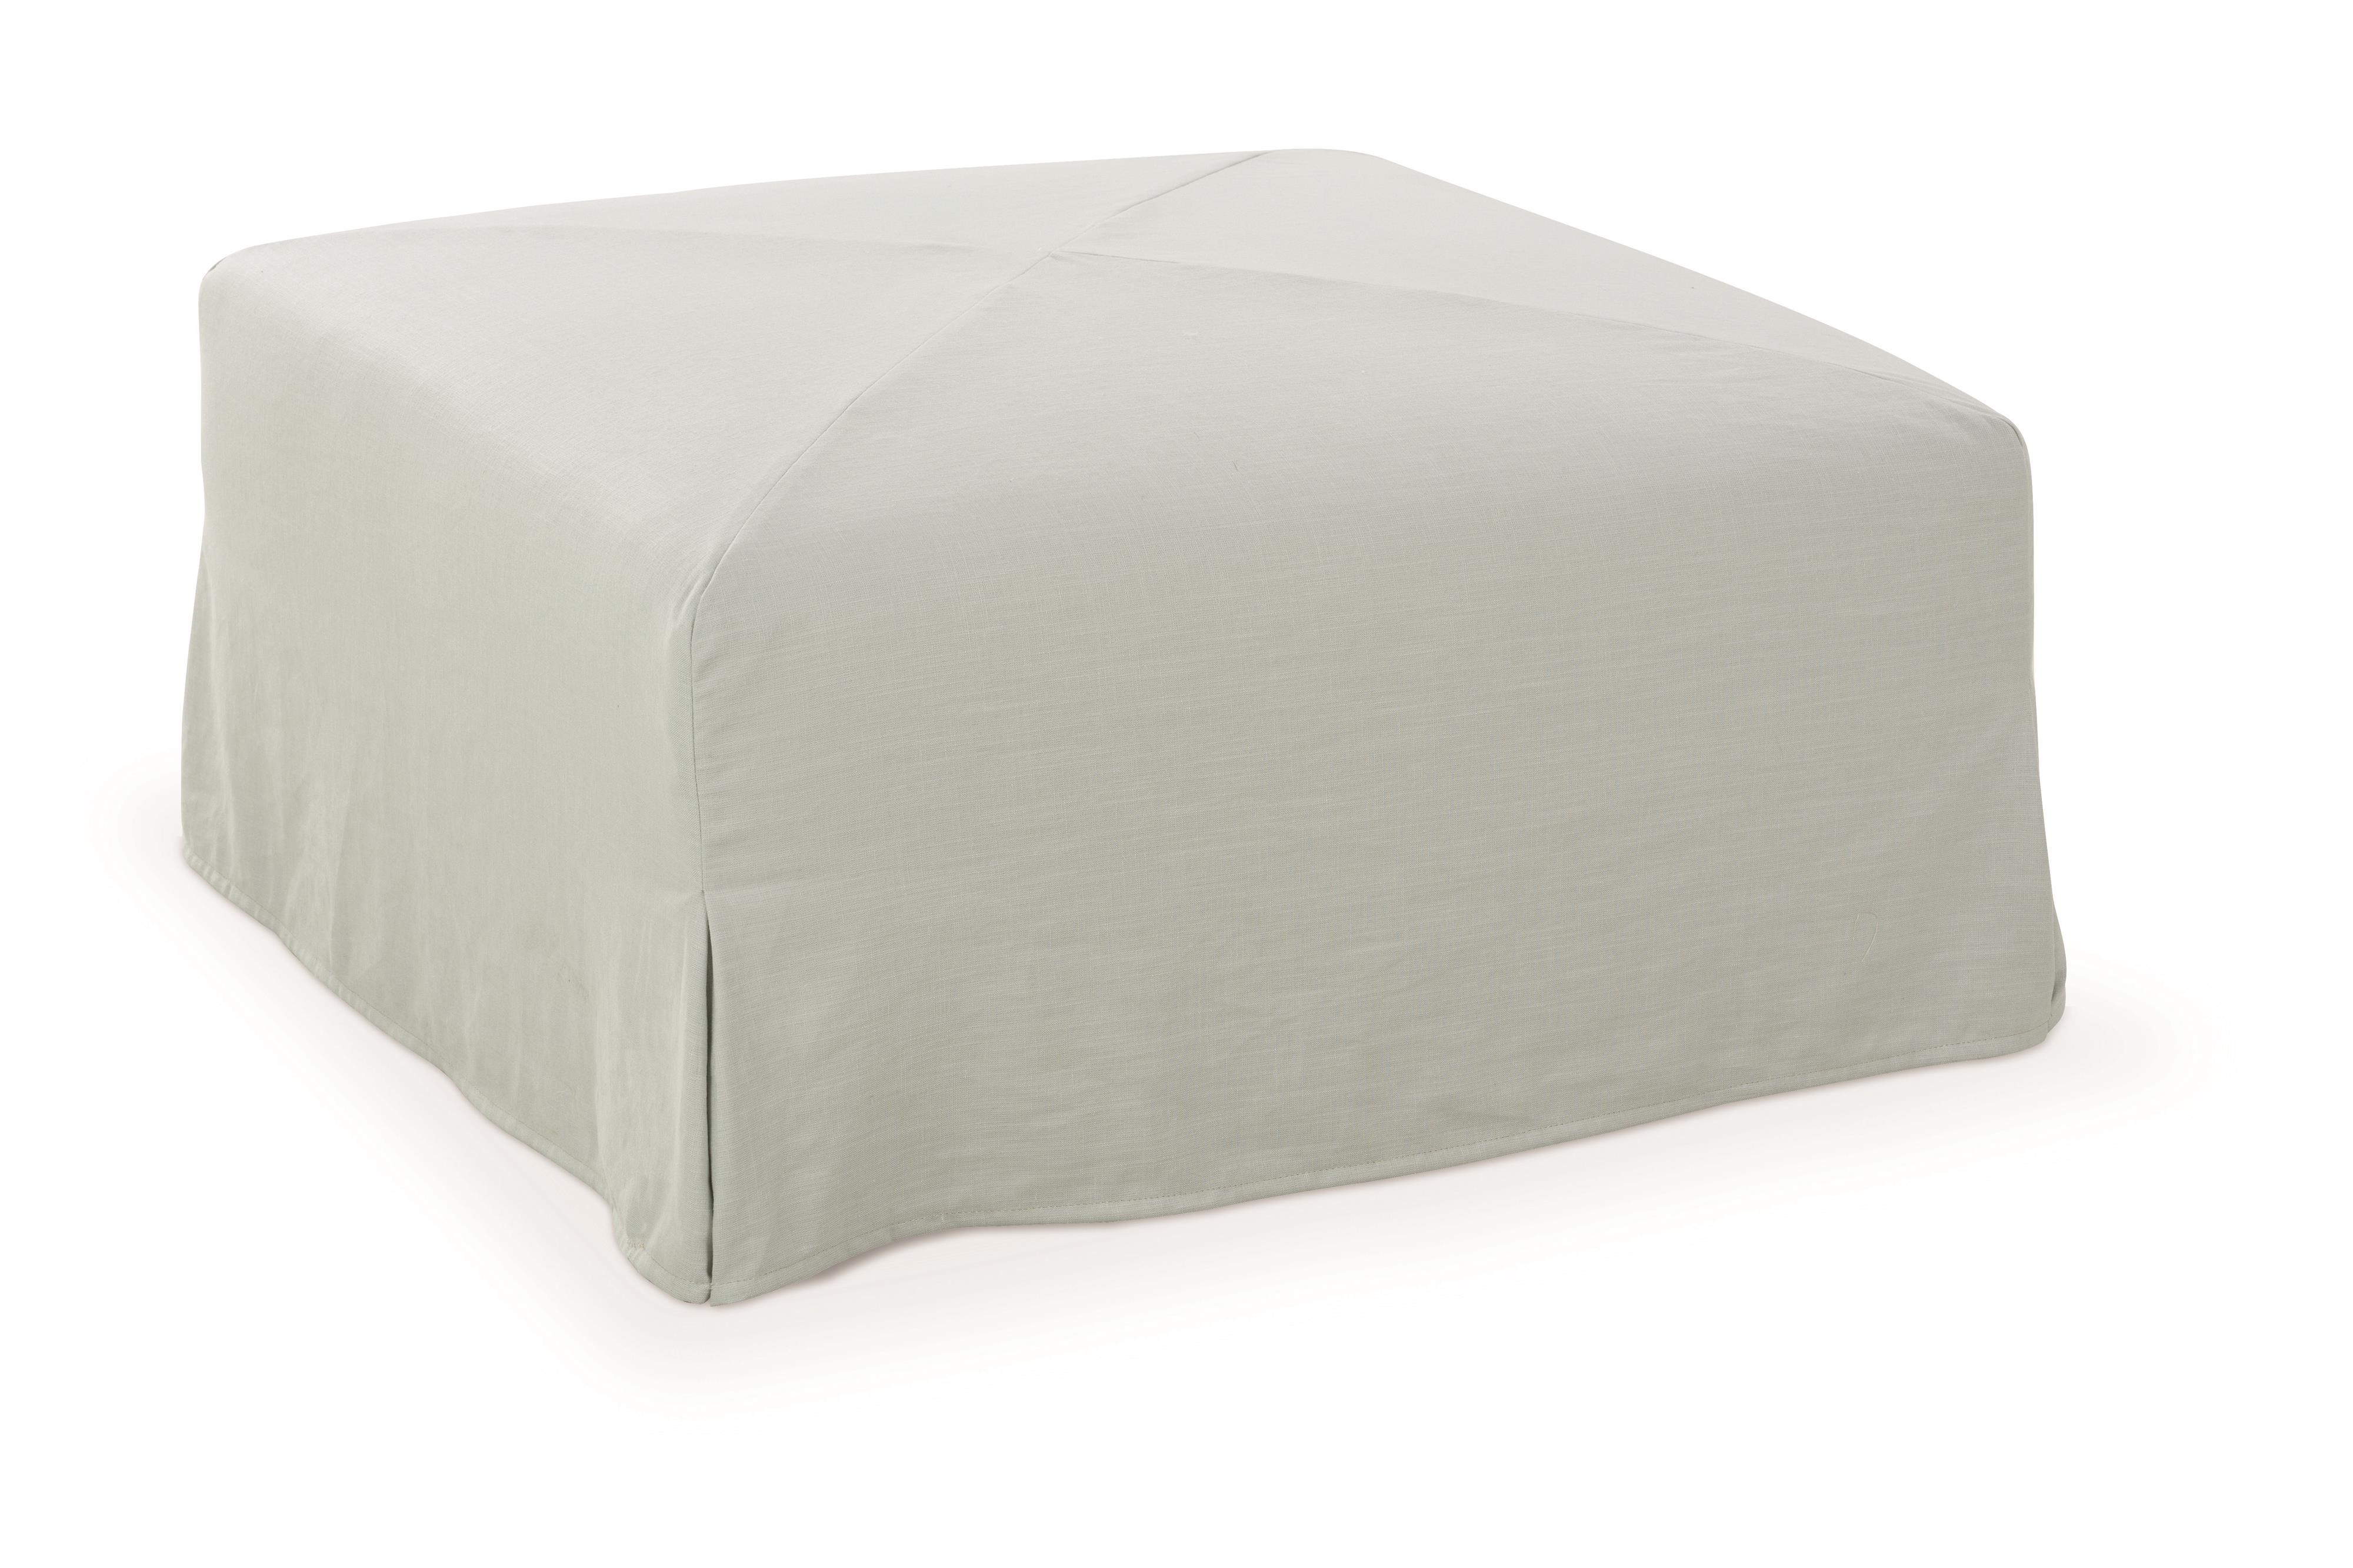 Accent Ottomans Miles Slipcover Ottoman by Robin Bruce at Rooms and Rest